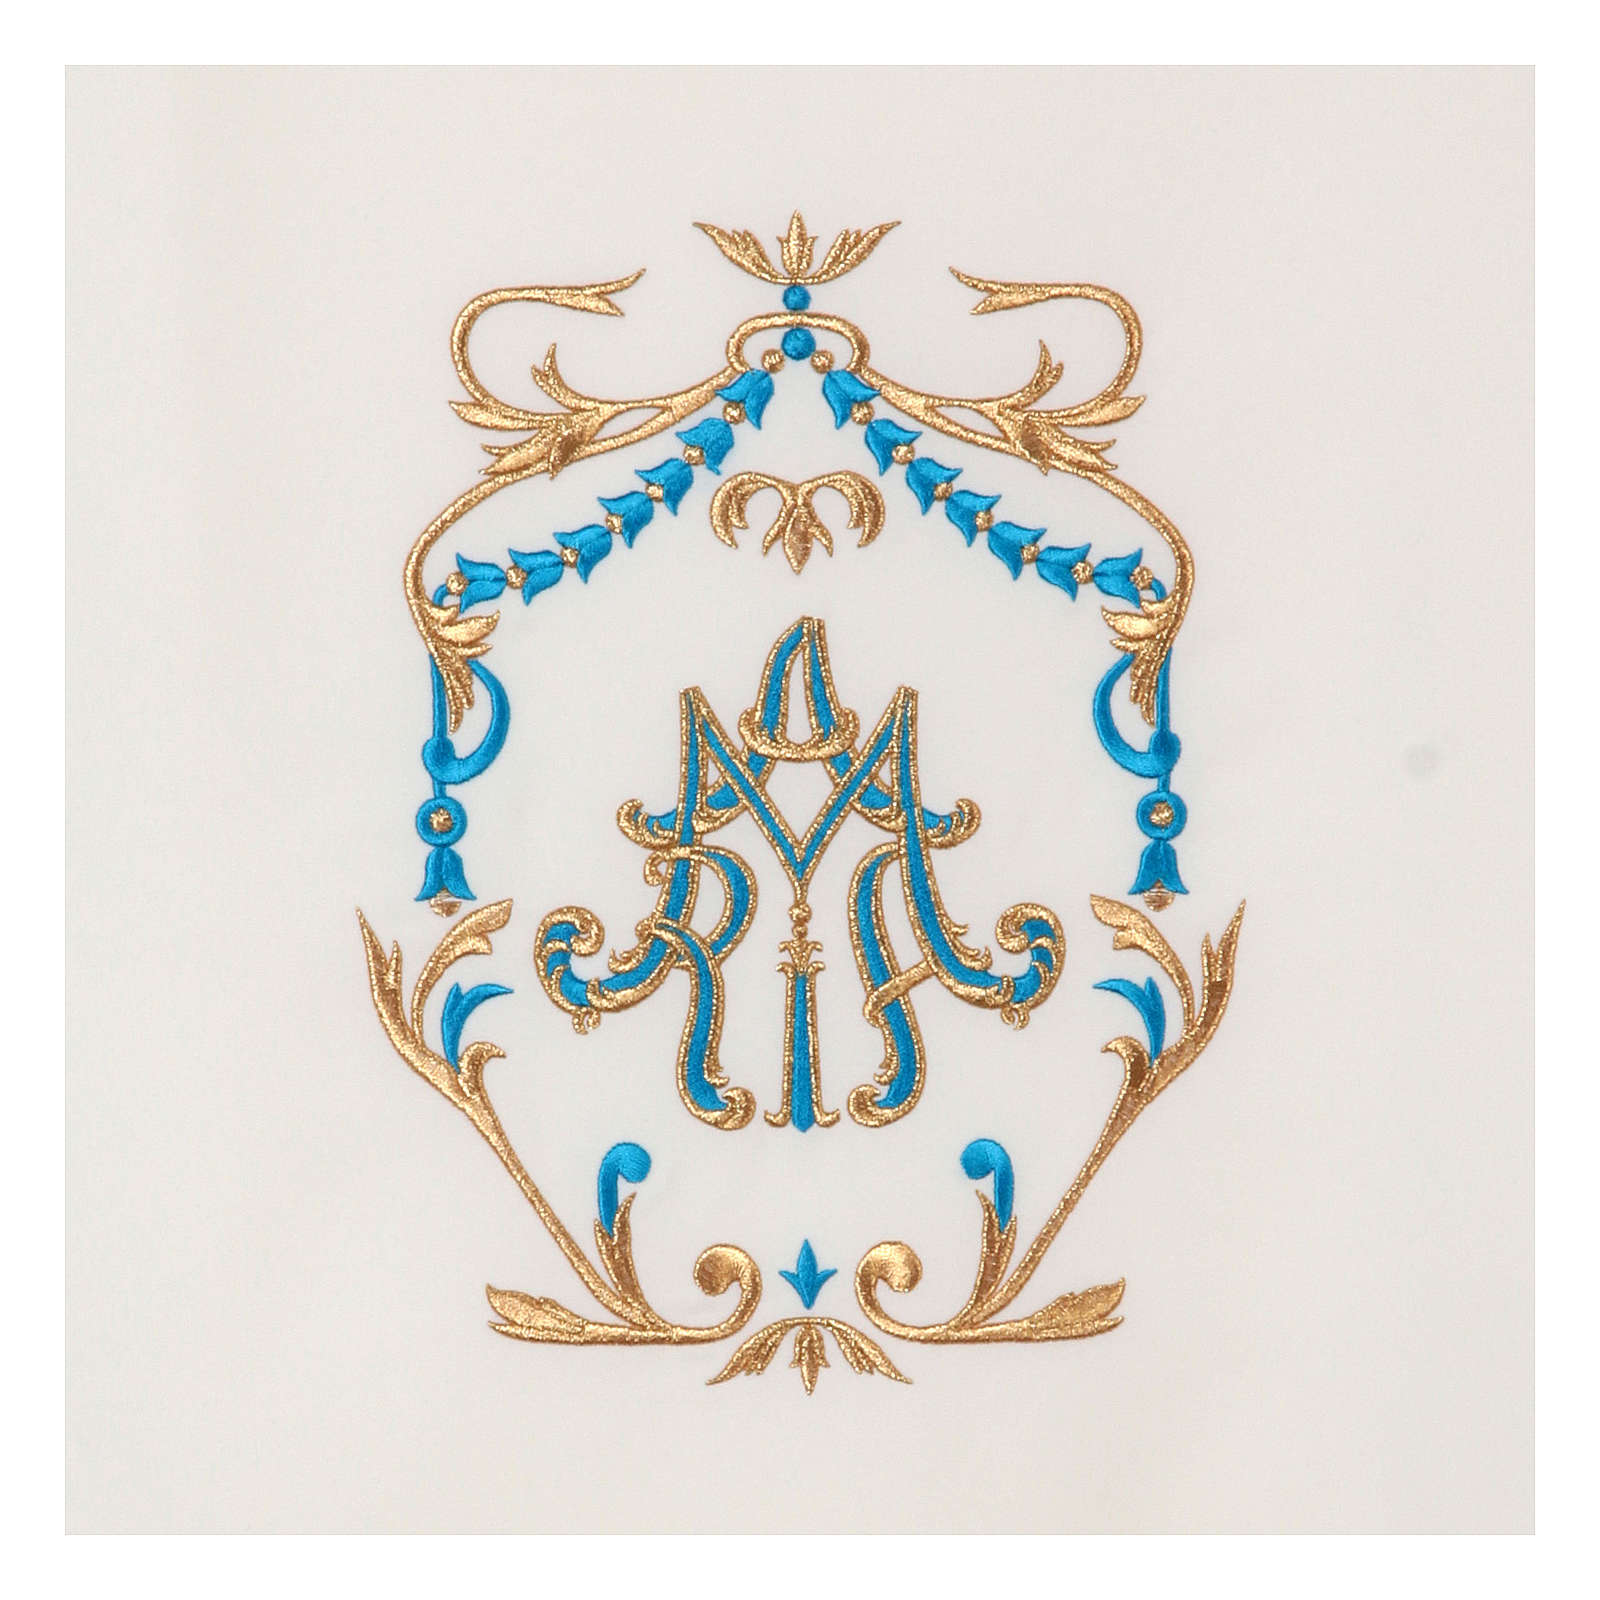 Voile lutrin broderie or et bleu initiales mariales 4